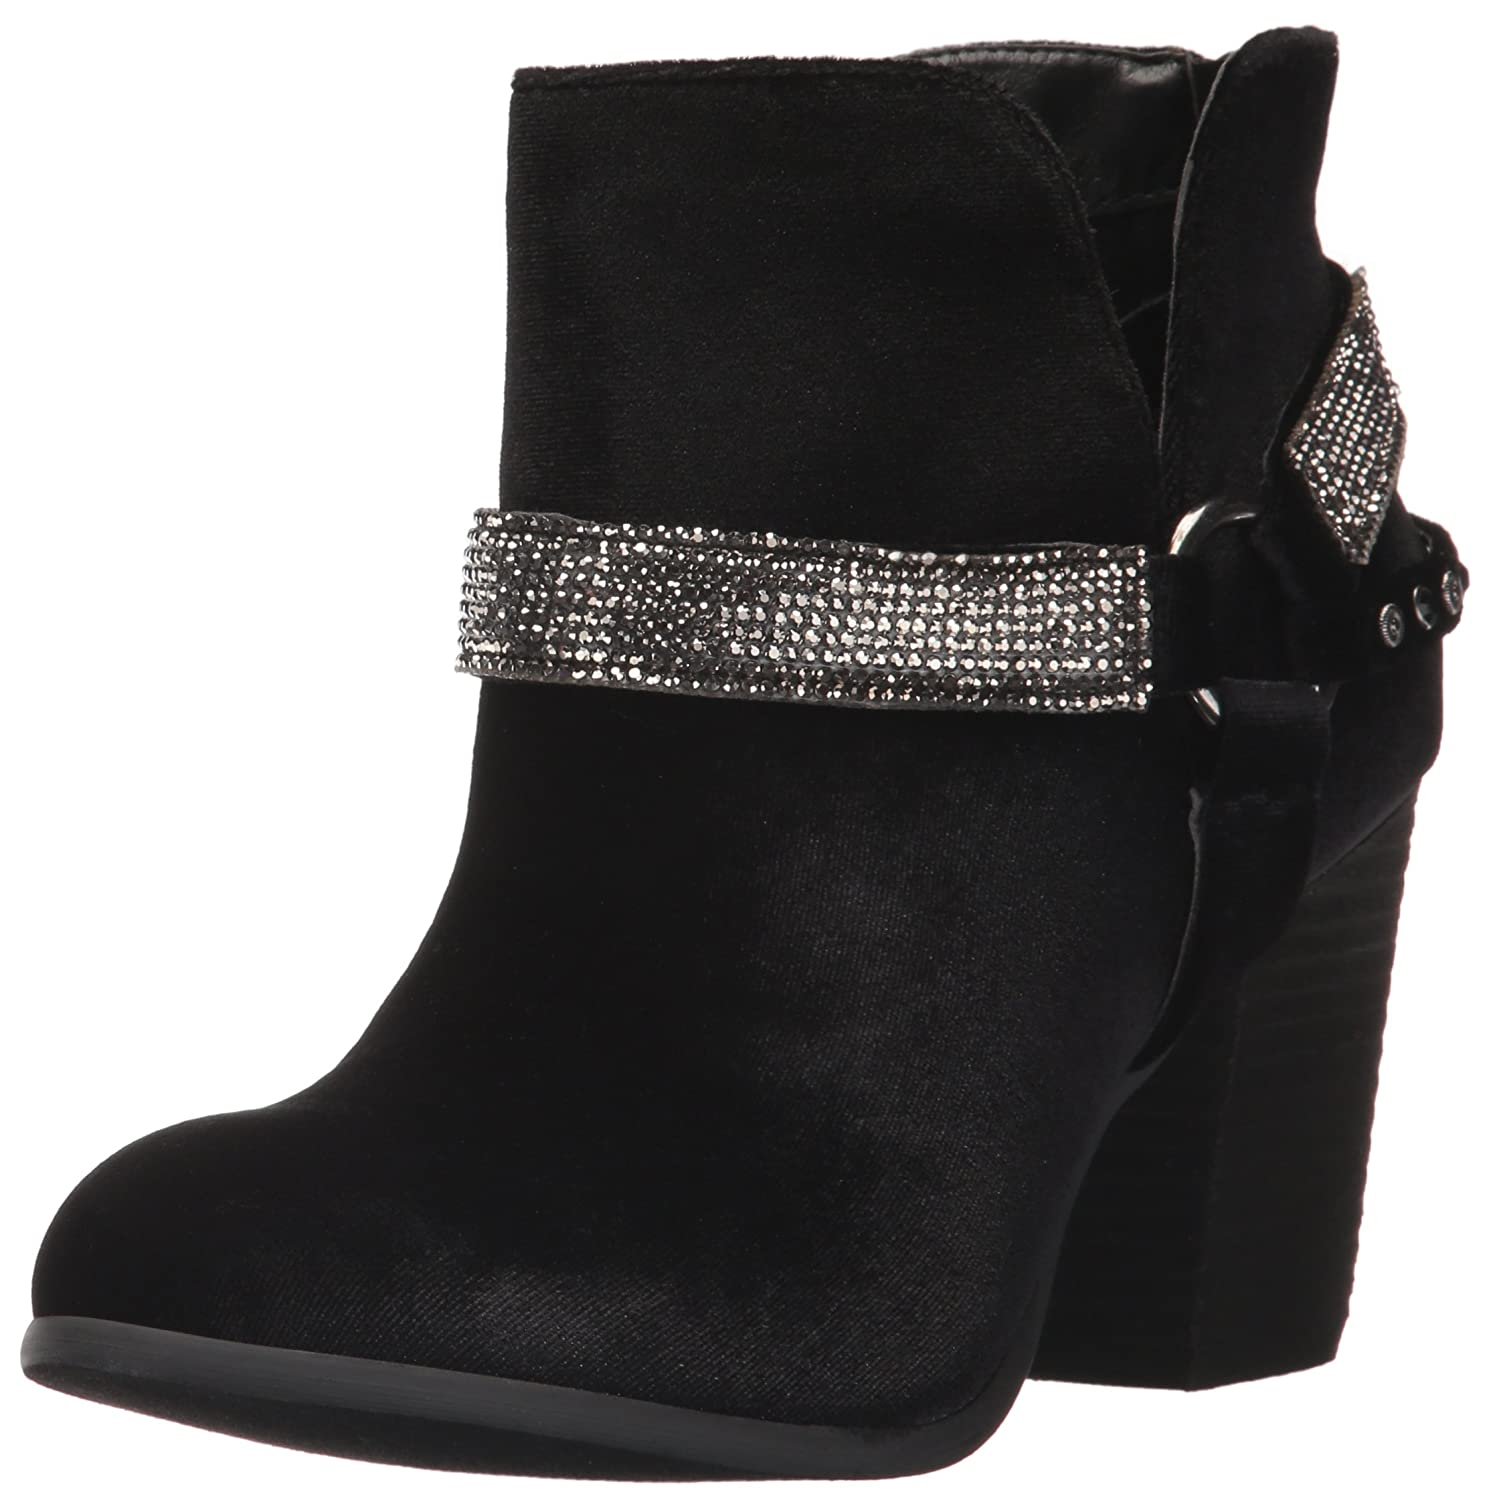 Not Rated Women's Norman Ankle Boot B06Y4HB6M8 8.5 B(M) US|Black